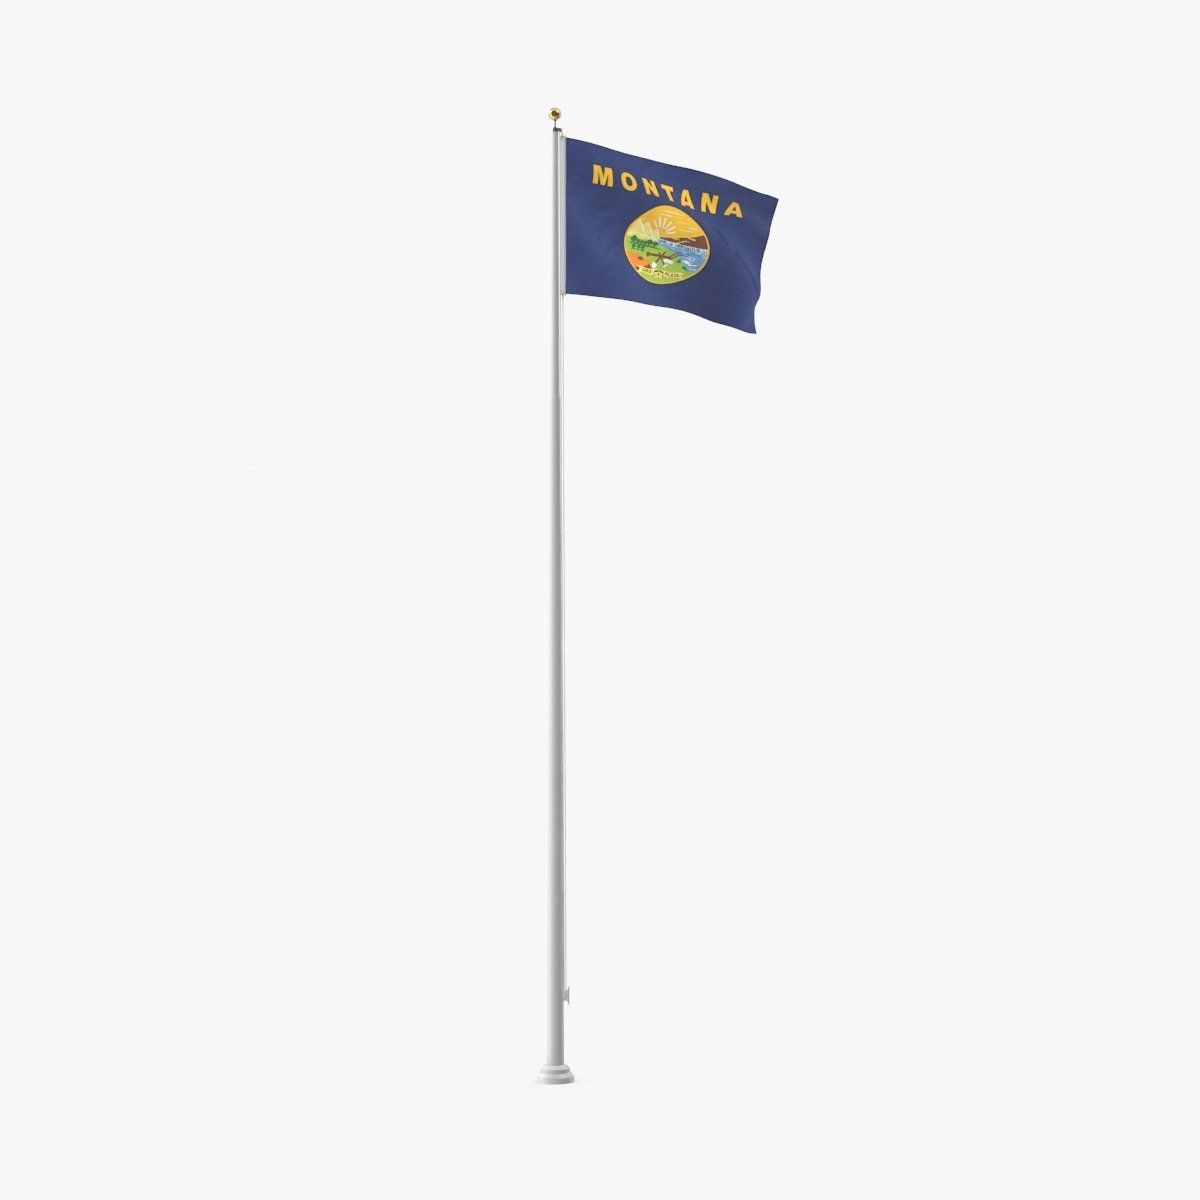 3D state-flags---montana